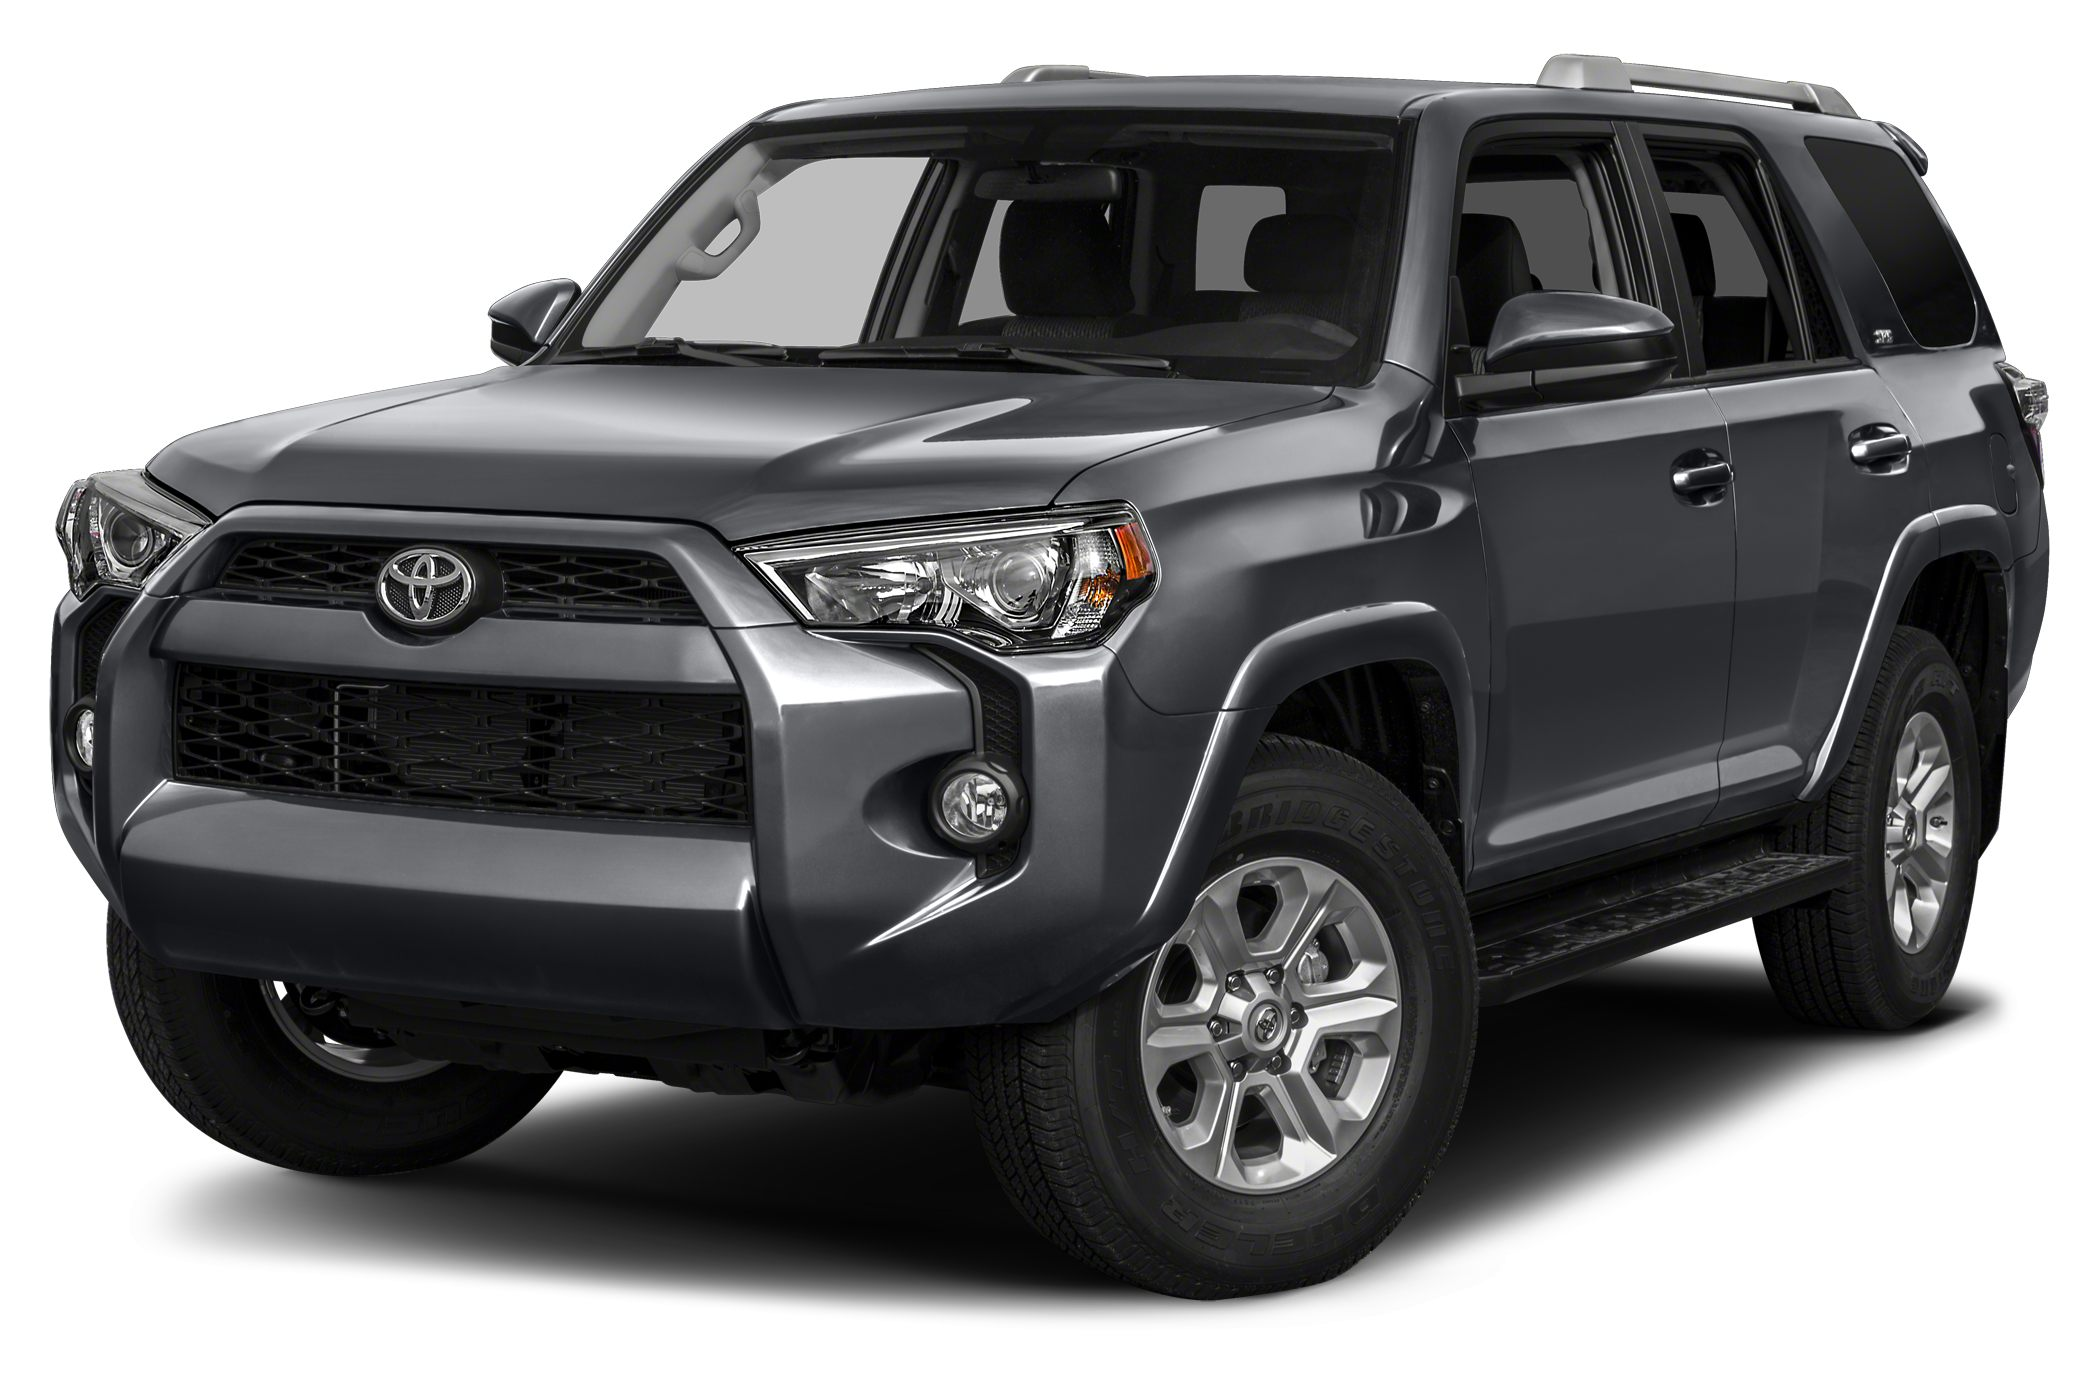 2015 Toyota 4Runner SR5 Premium SUV for sale in Murfreesboro for $38,540 with 0 miles.